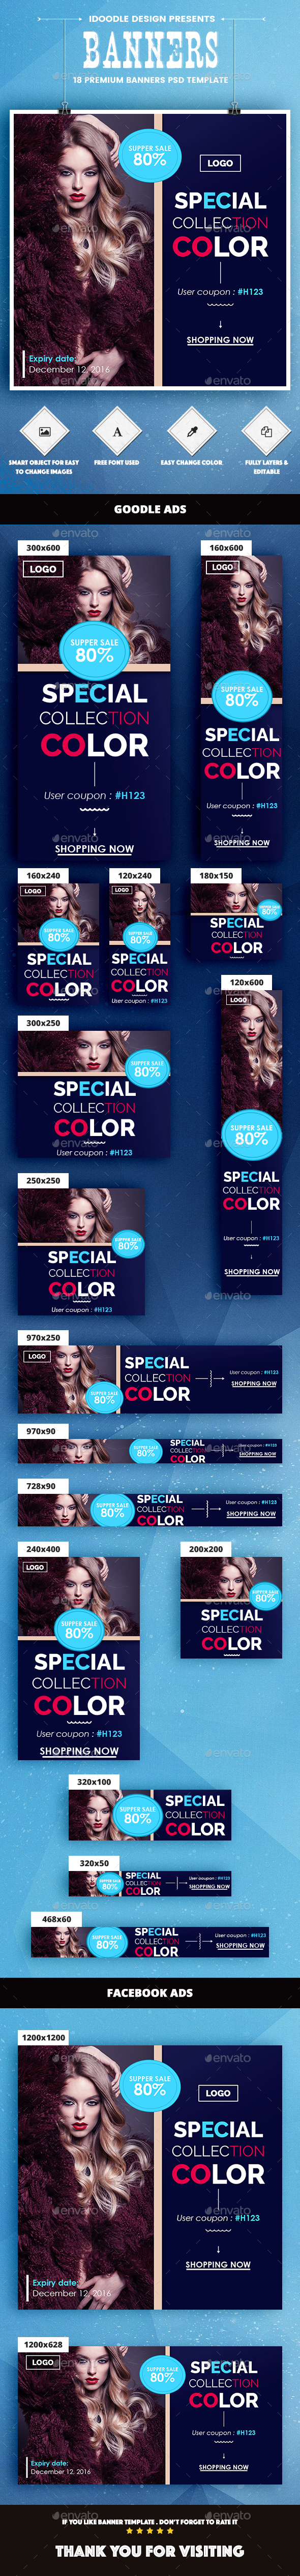 Fashion Banners Ads - Banners & Ads Web Elements